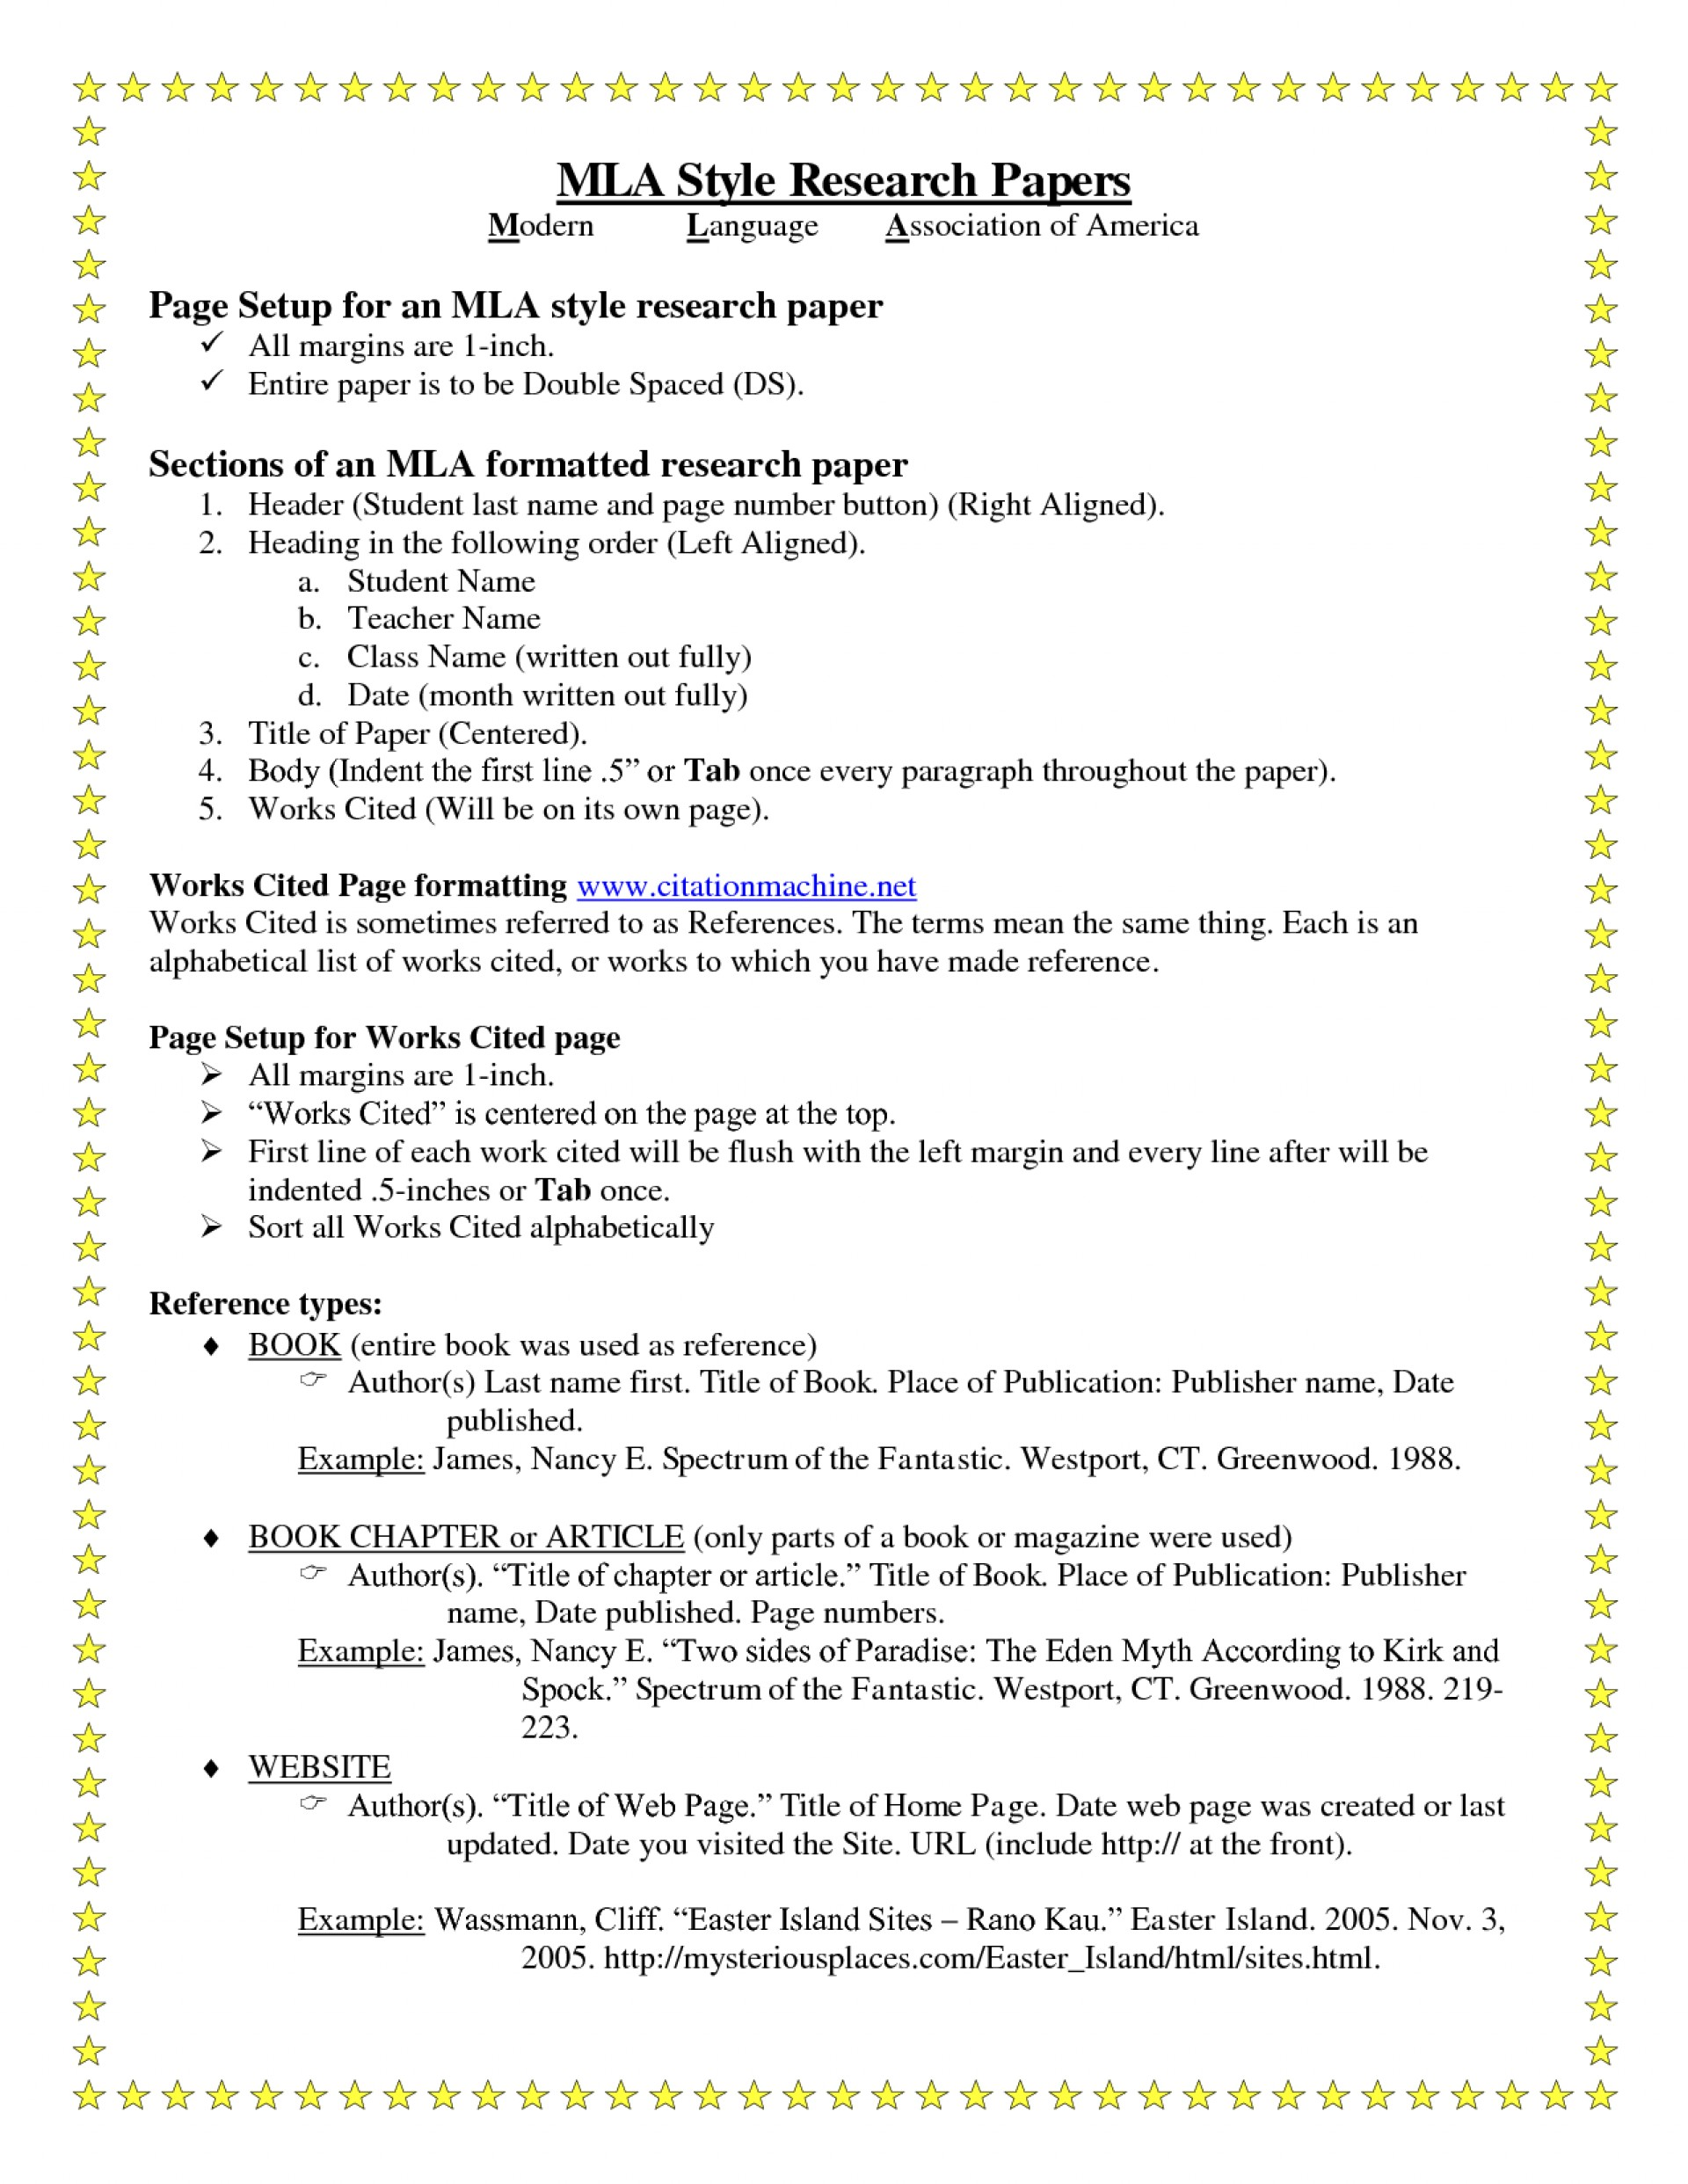 002 How To Write Research Paper Online Course Awesome On Writing A Class 1920